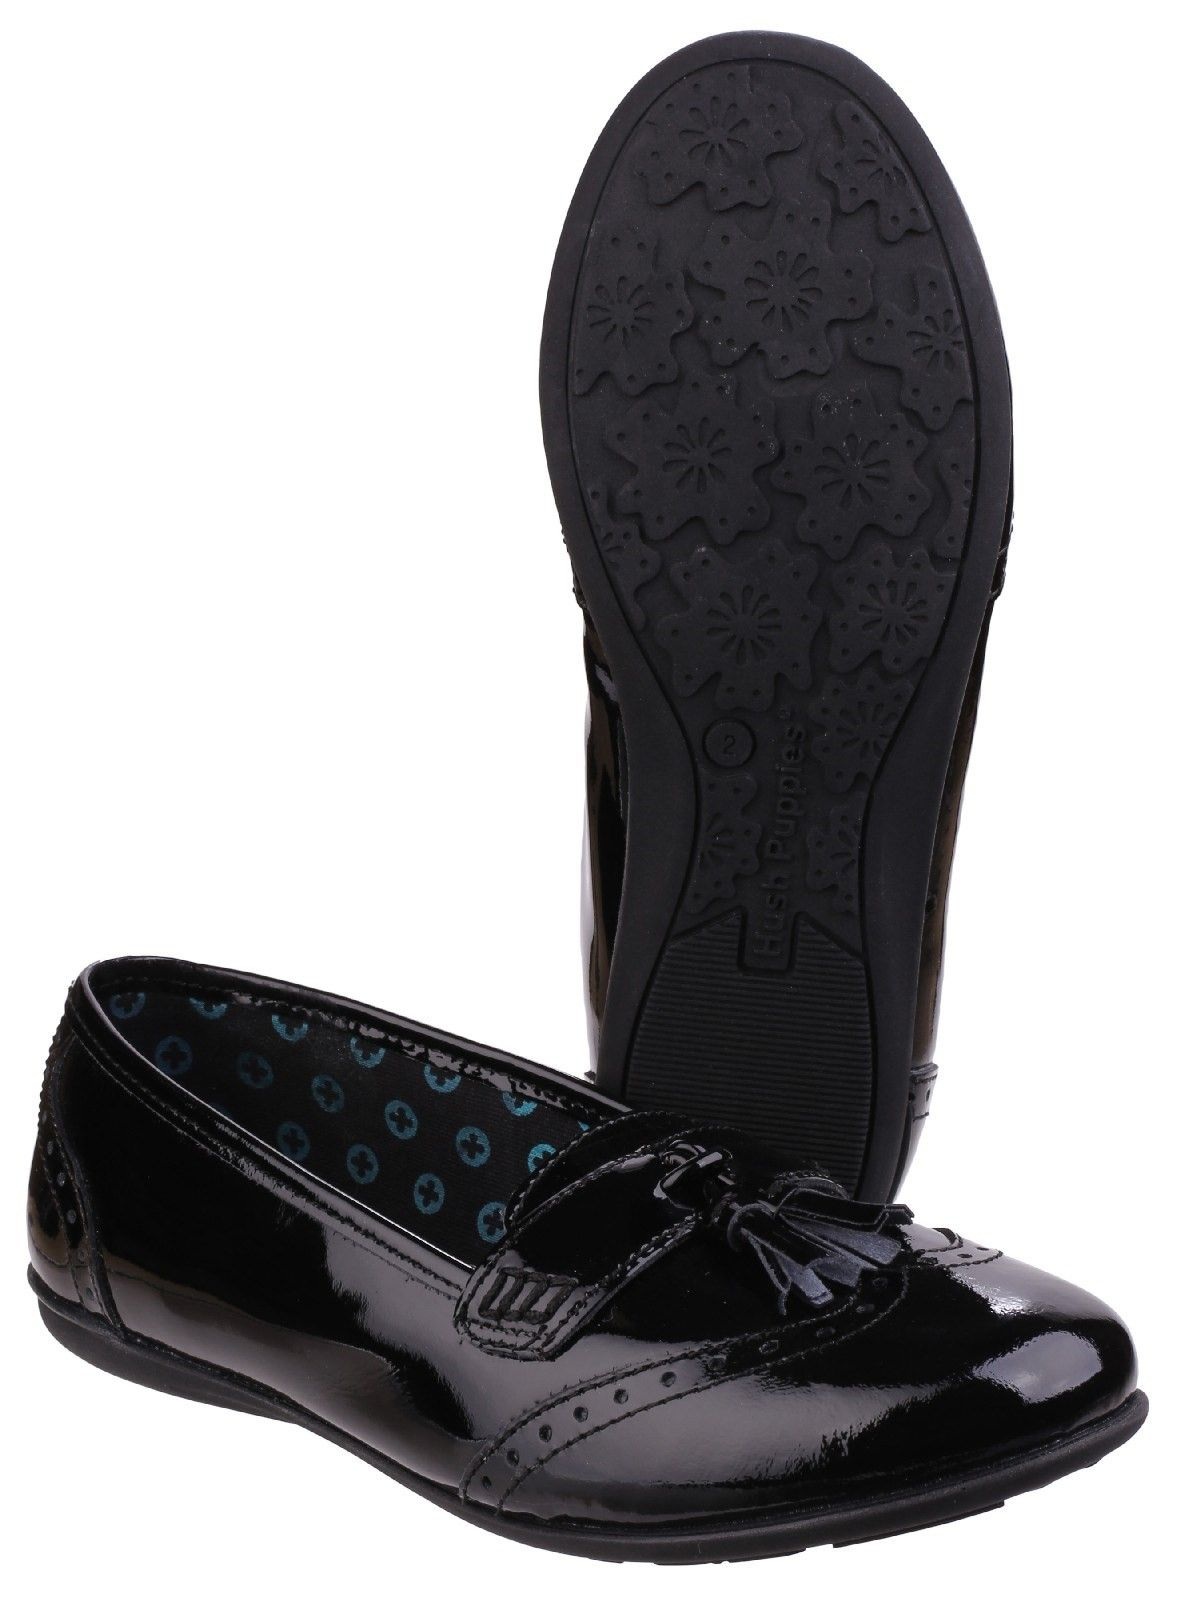 Esme Senior School Shoe